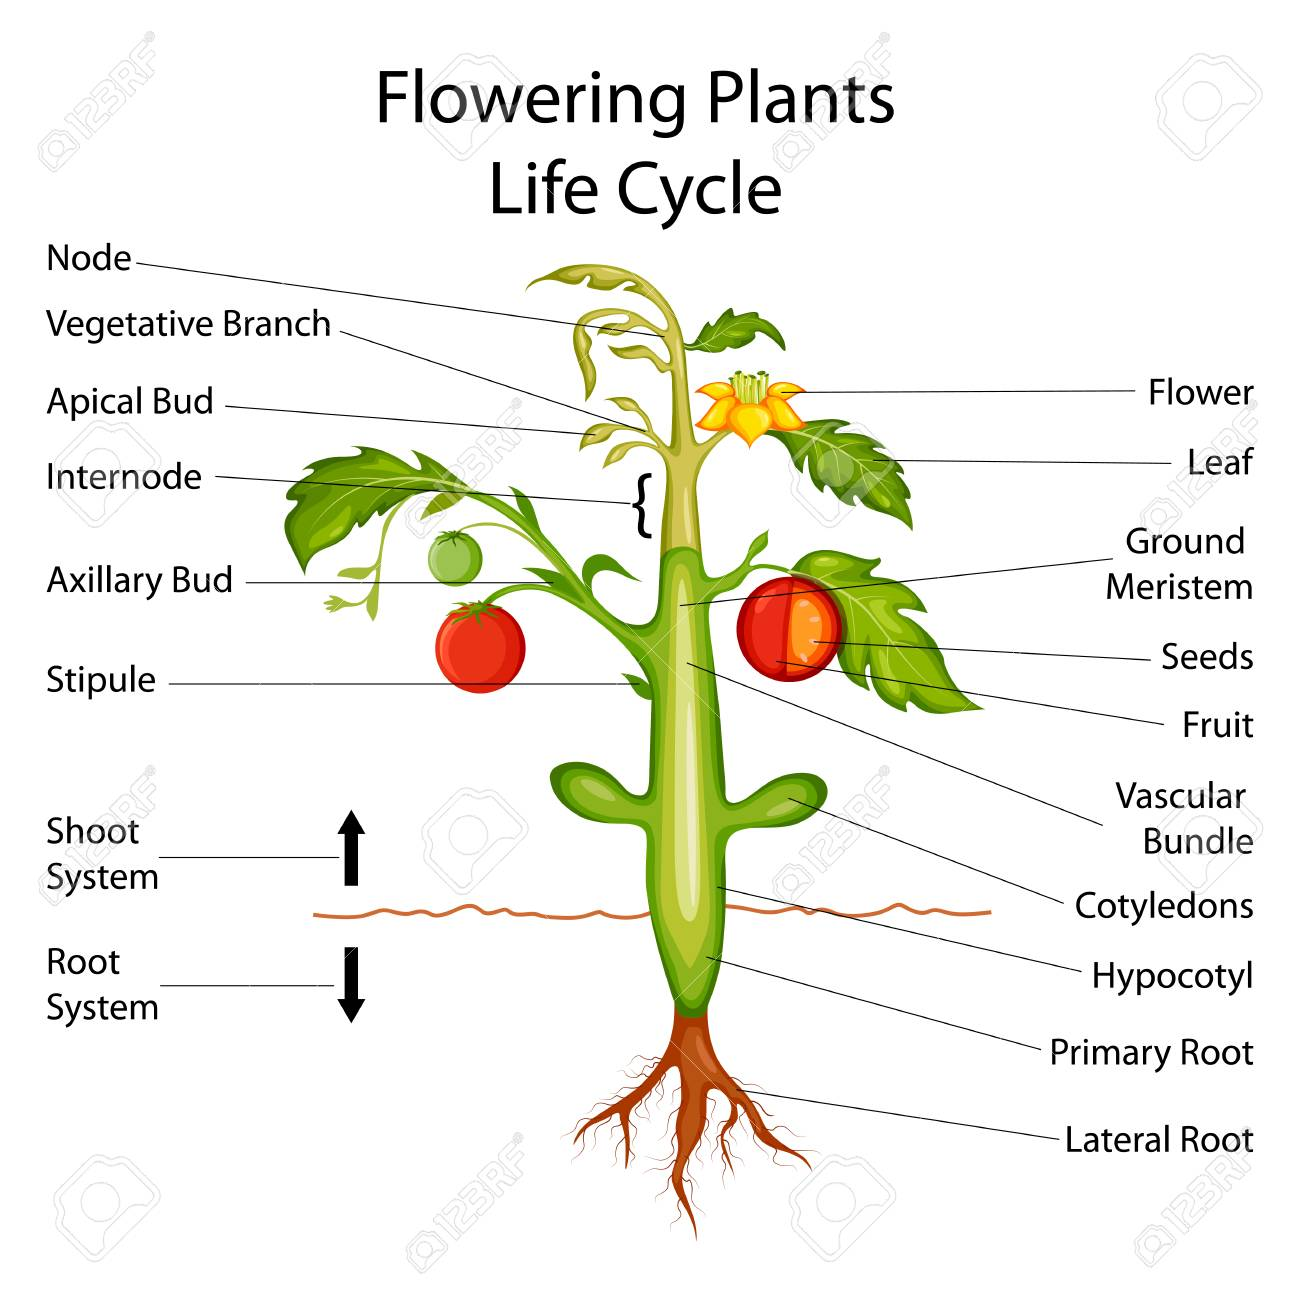 hight resolution of herbaceous stem diagram on wiring diagramherbaceous plant diagram wiring diagram herbaceous monocot dicot stems to label